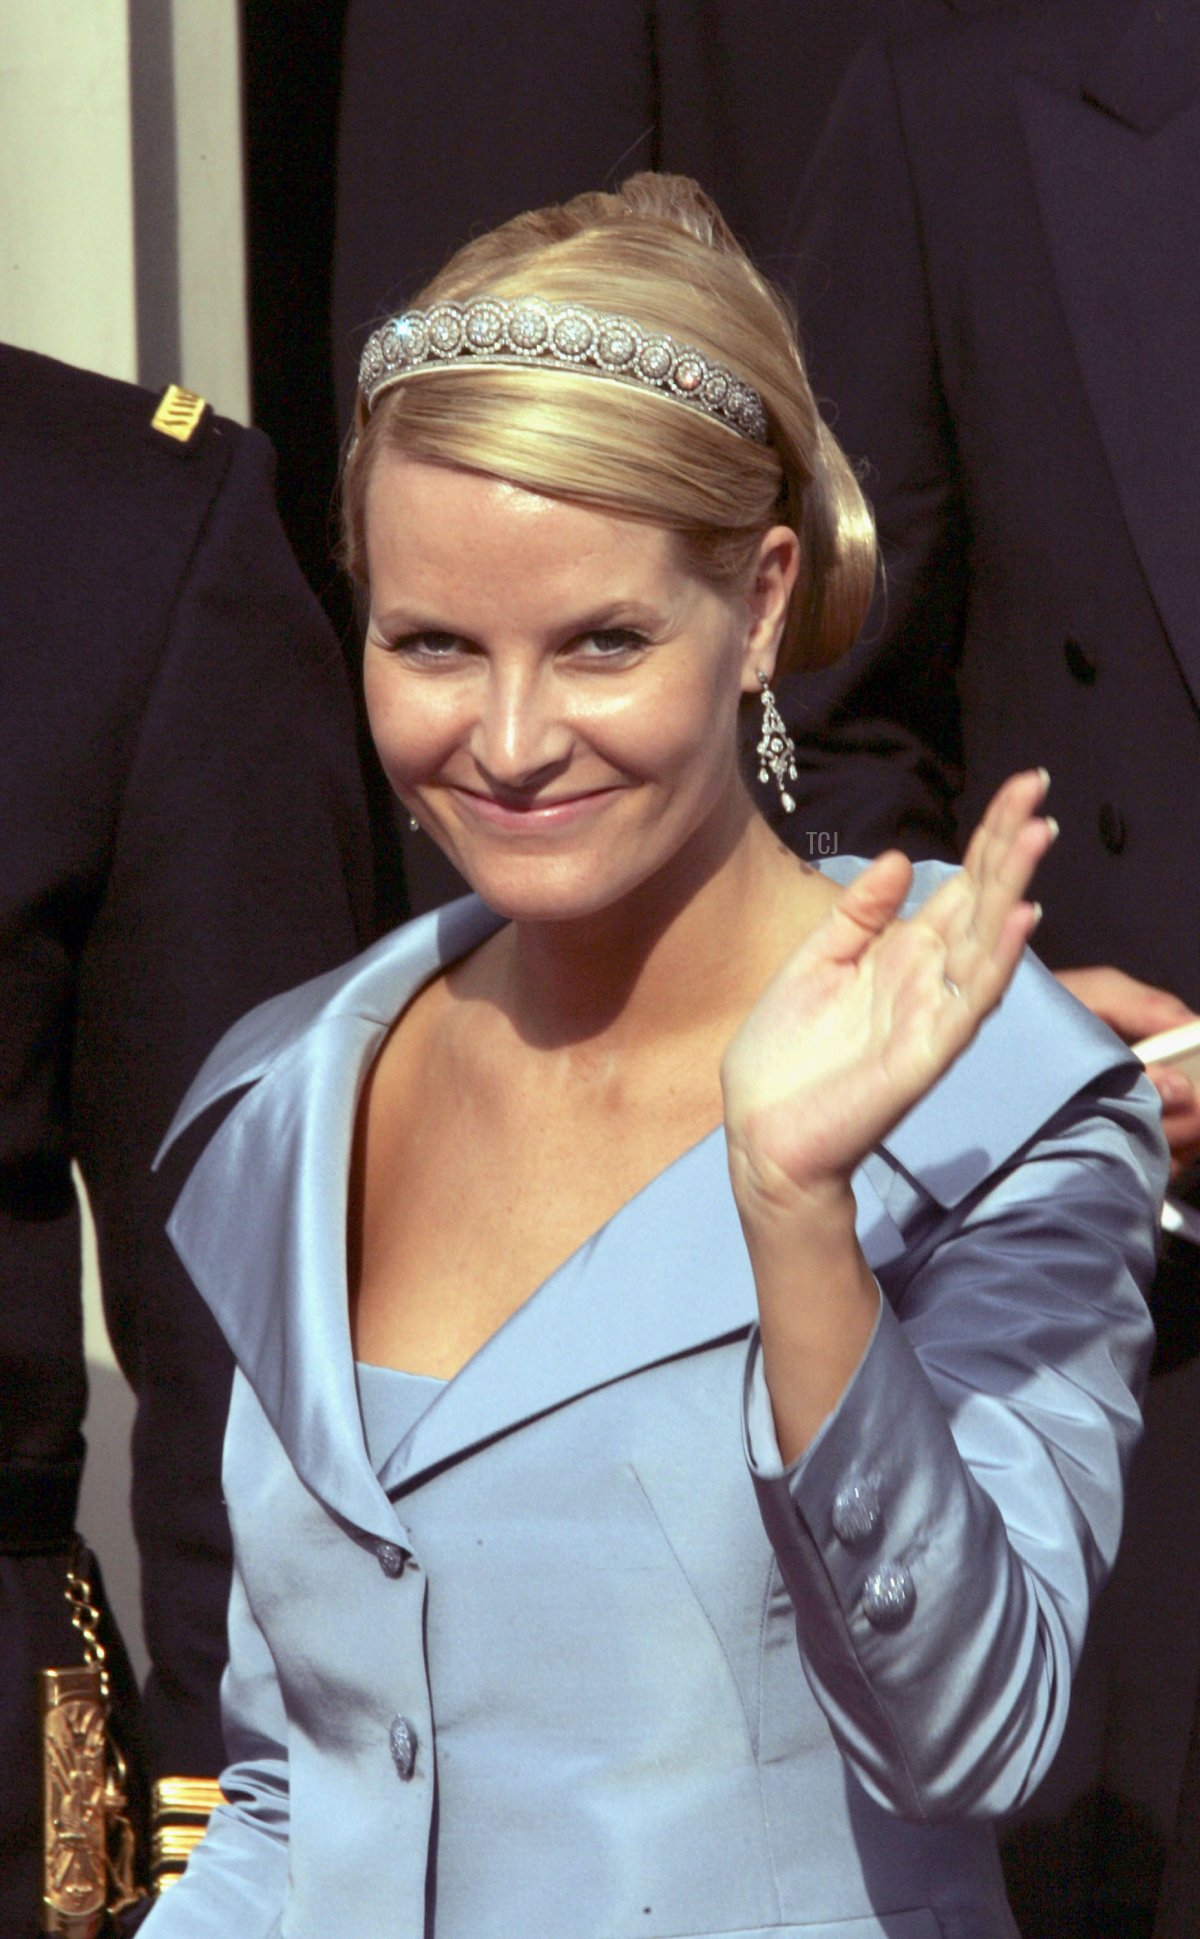 Crown Princess Mette-Marit of Norway leaves Copenhagen Cathedral after the wedding ceremony between Danish Crown Prince Frederik and Miss Mary Elizabeth Donaldson in Copenhagen Cathedral May 14, 2004